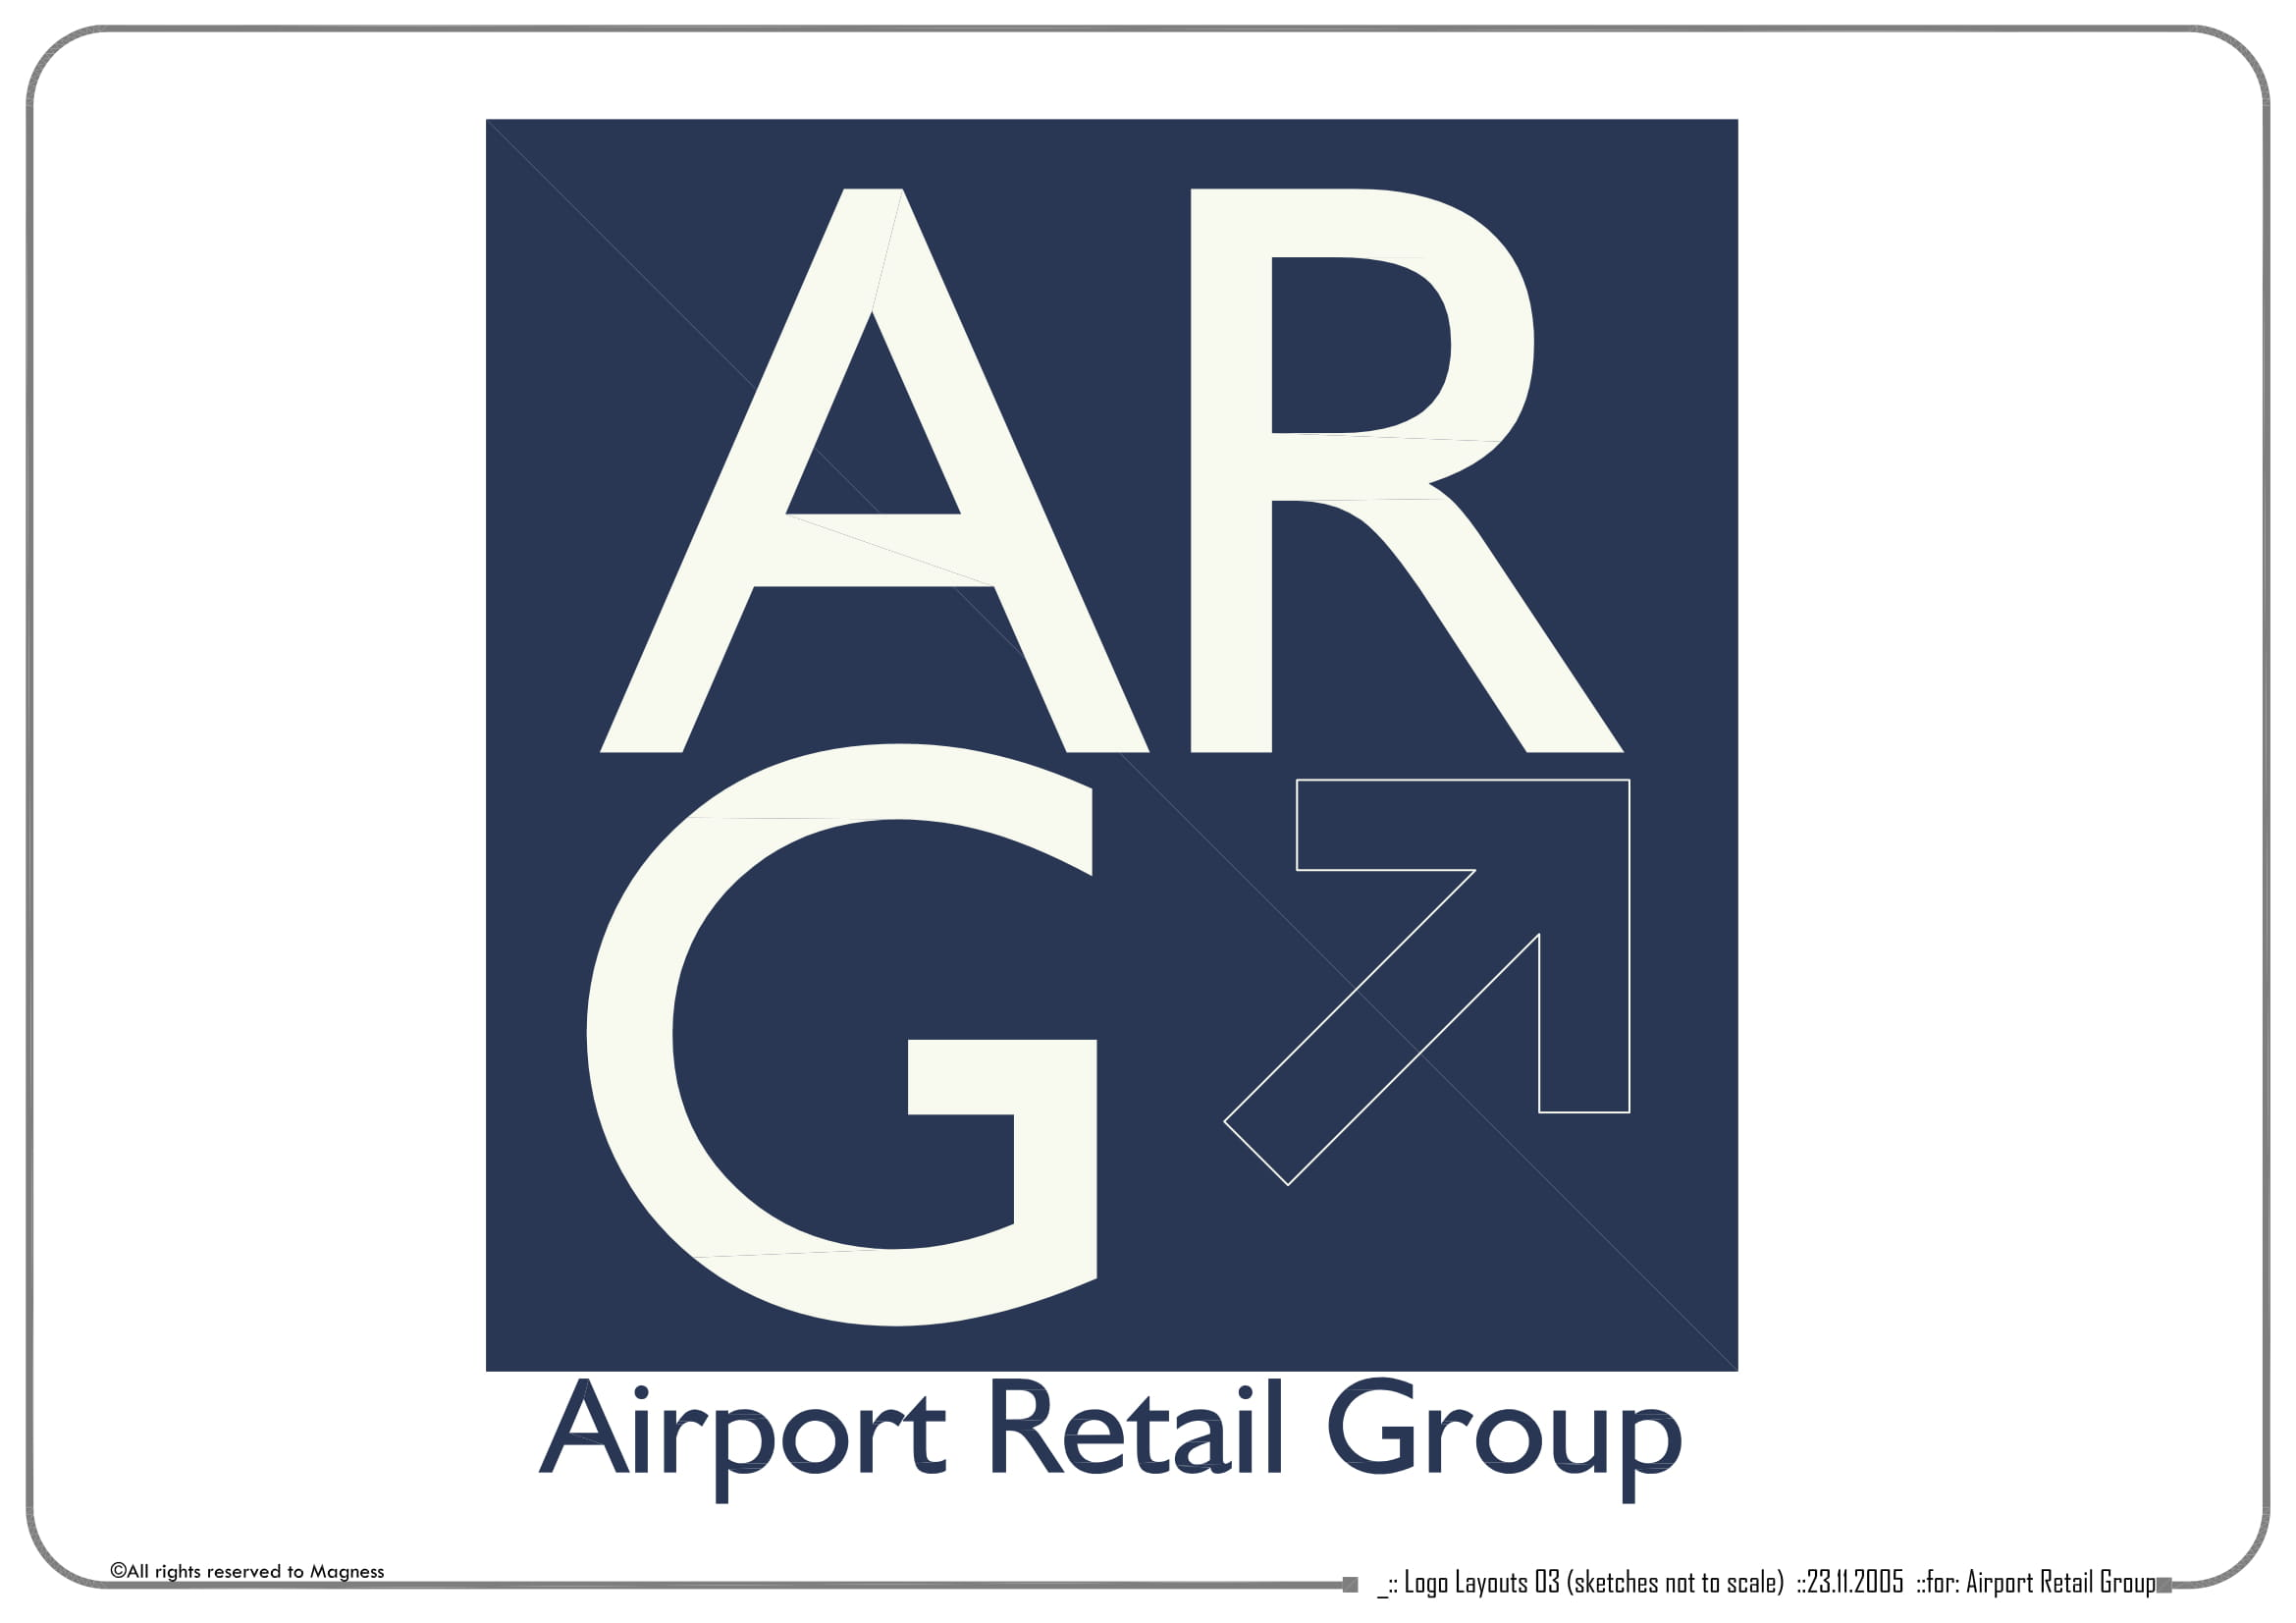 Airport Retail Group (ARG)